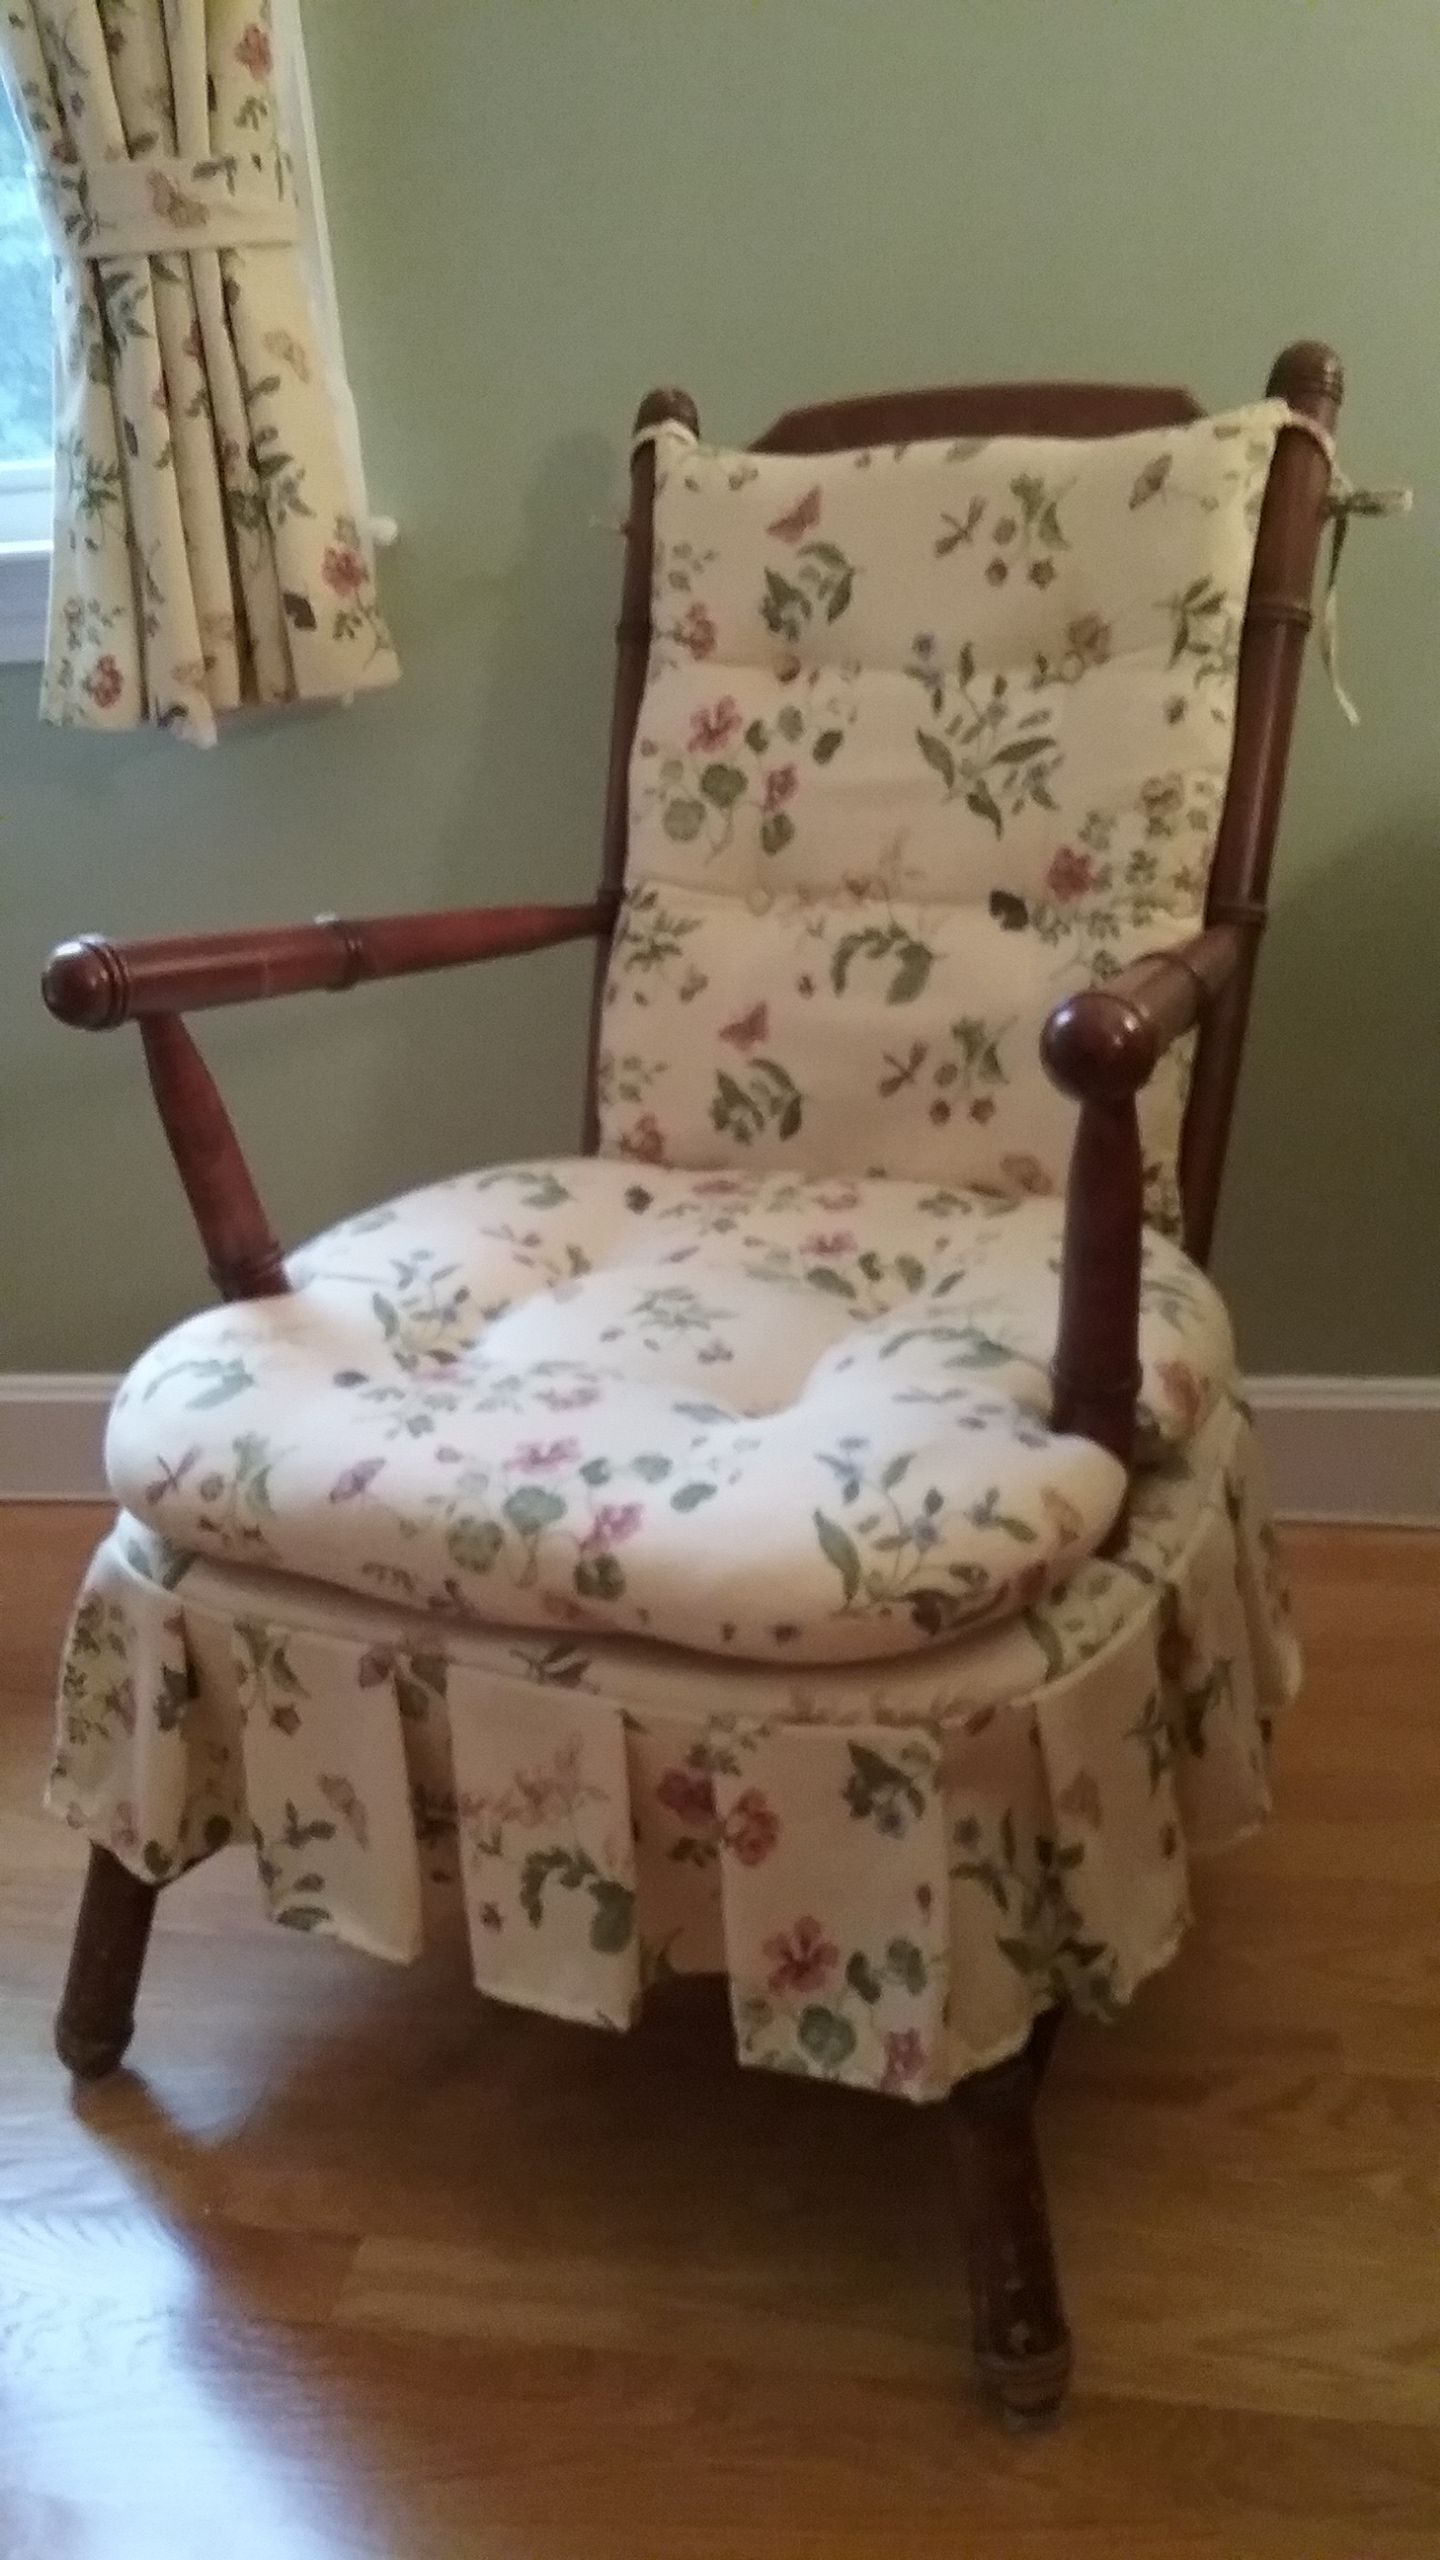 Cricket Chair Reupholstered Rocking Cushions Benches Stools Nifty Upholstery